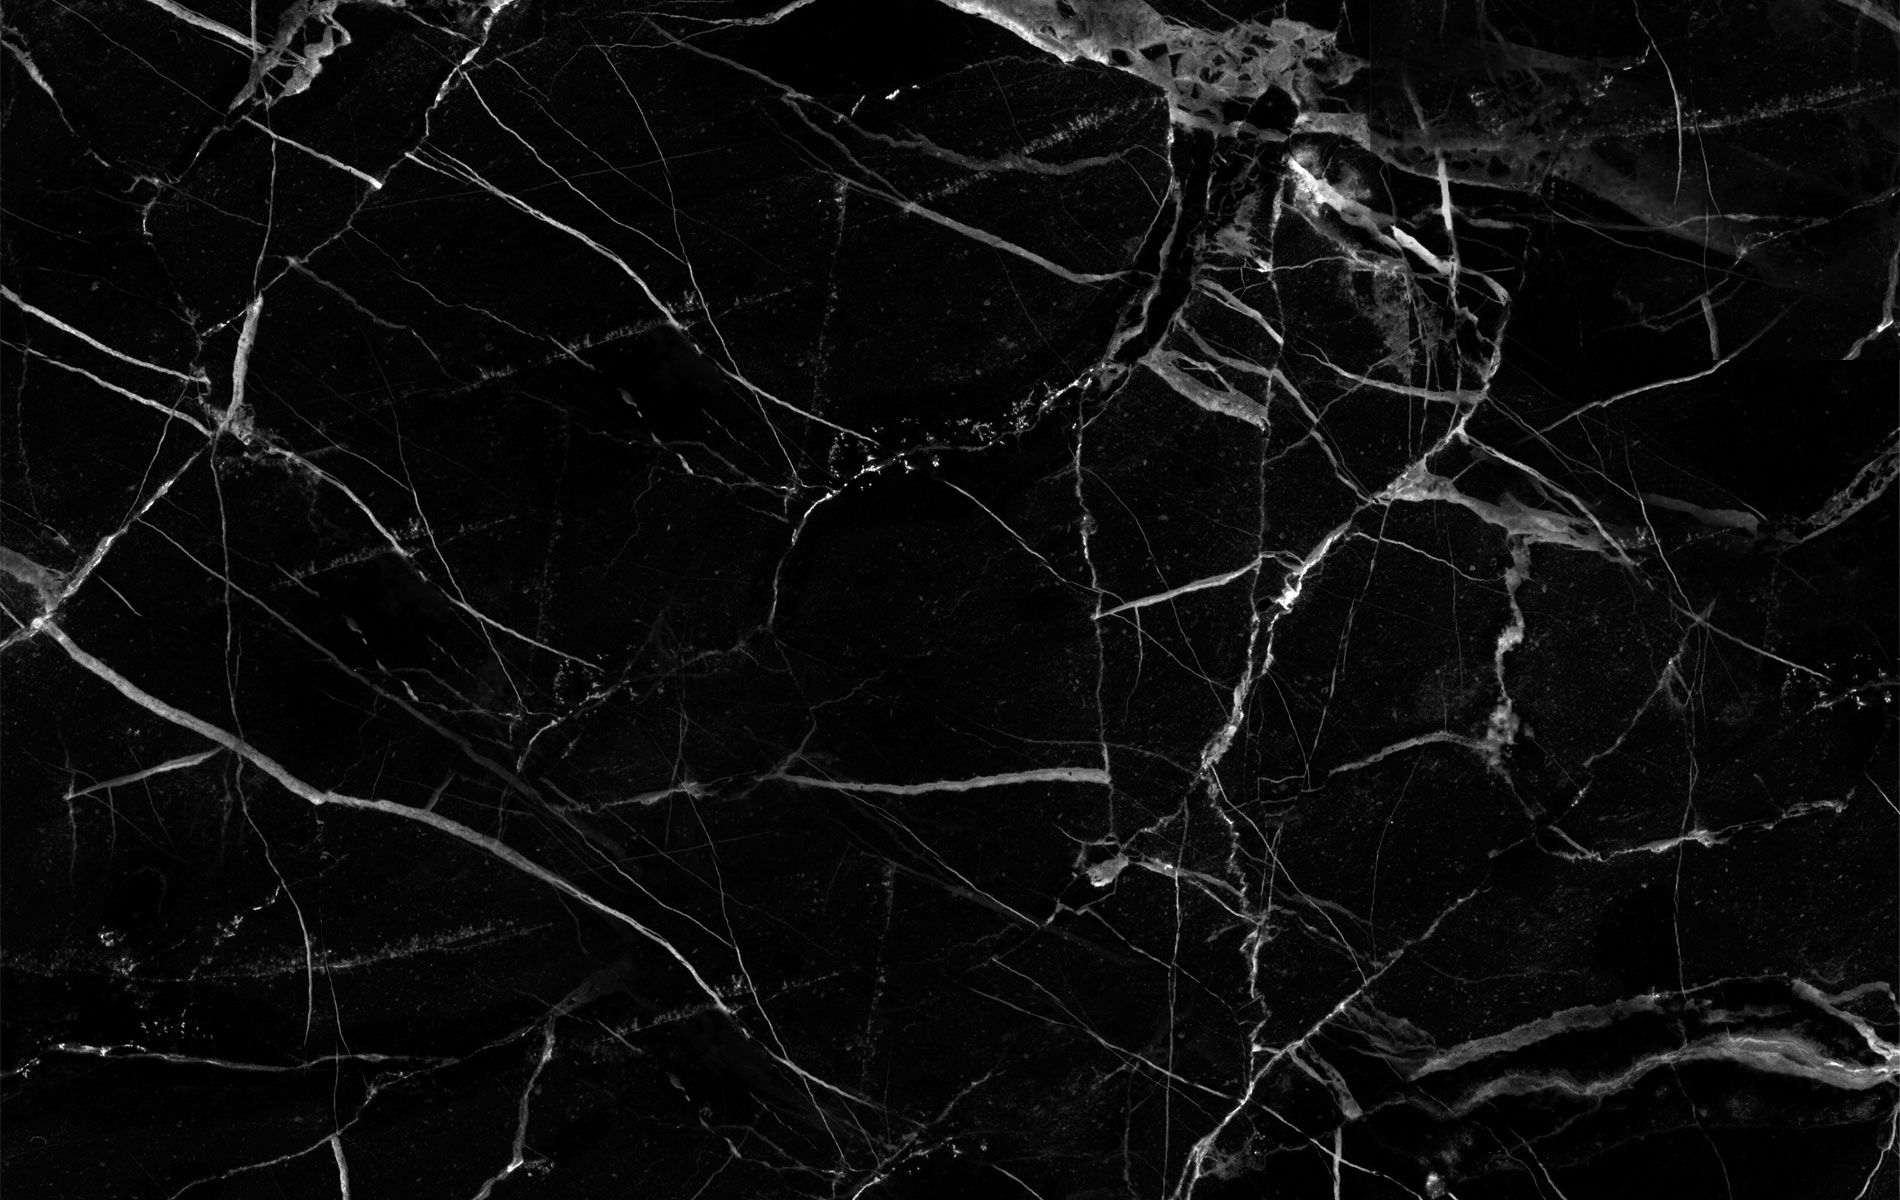 Dark Black Marble Hd Photos Marble Desktop Wallpaper Desktop Wallpaper Black Marble Wallpaper Hd